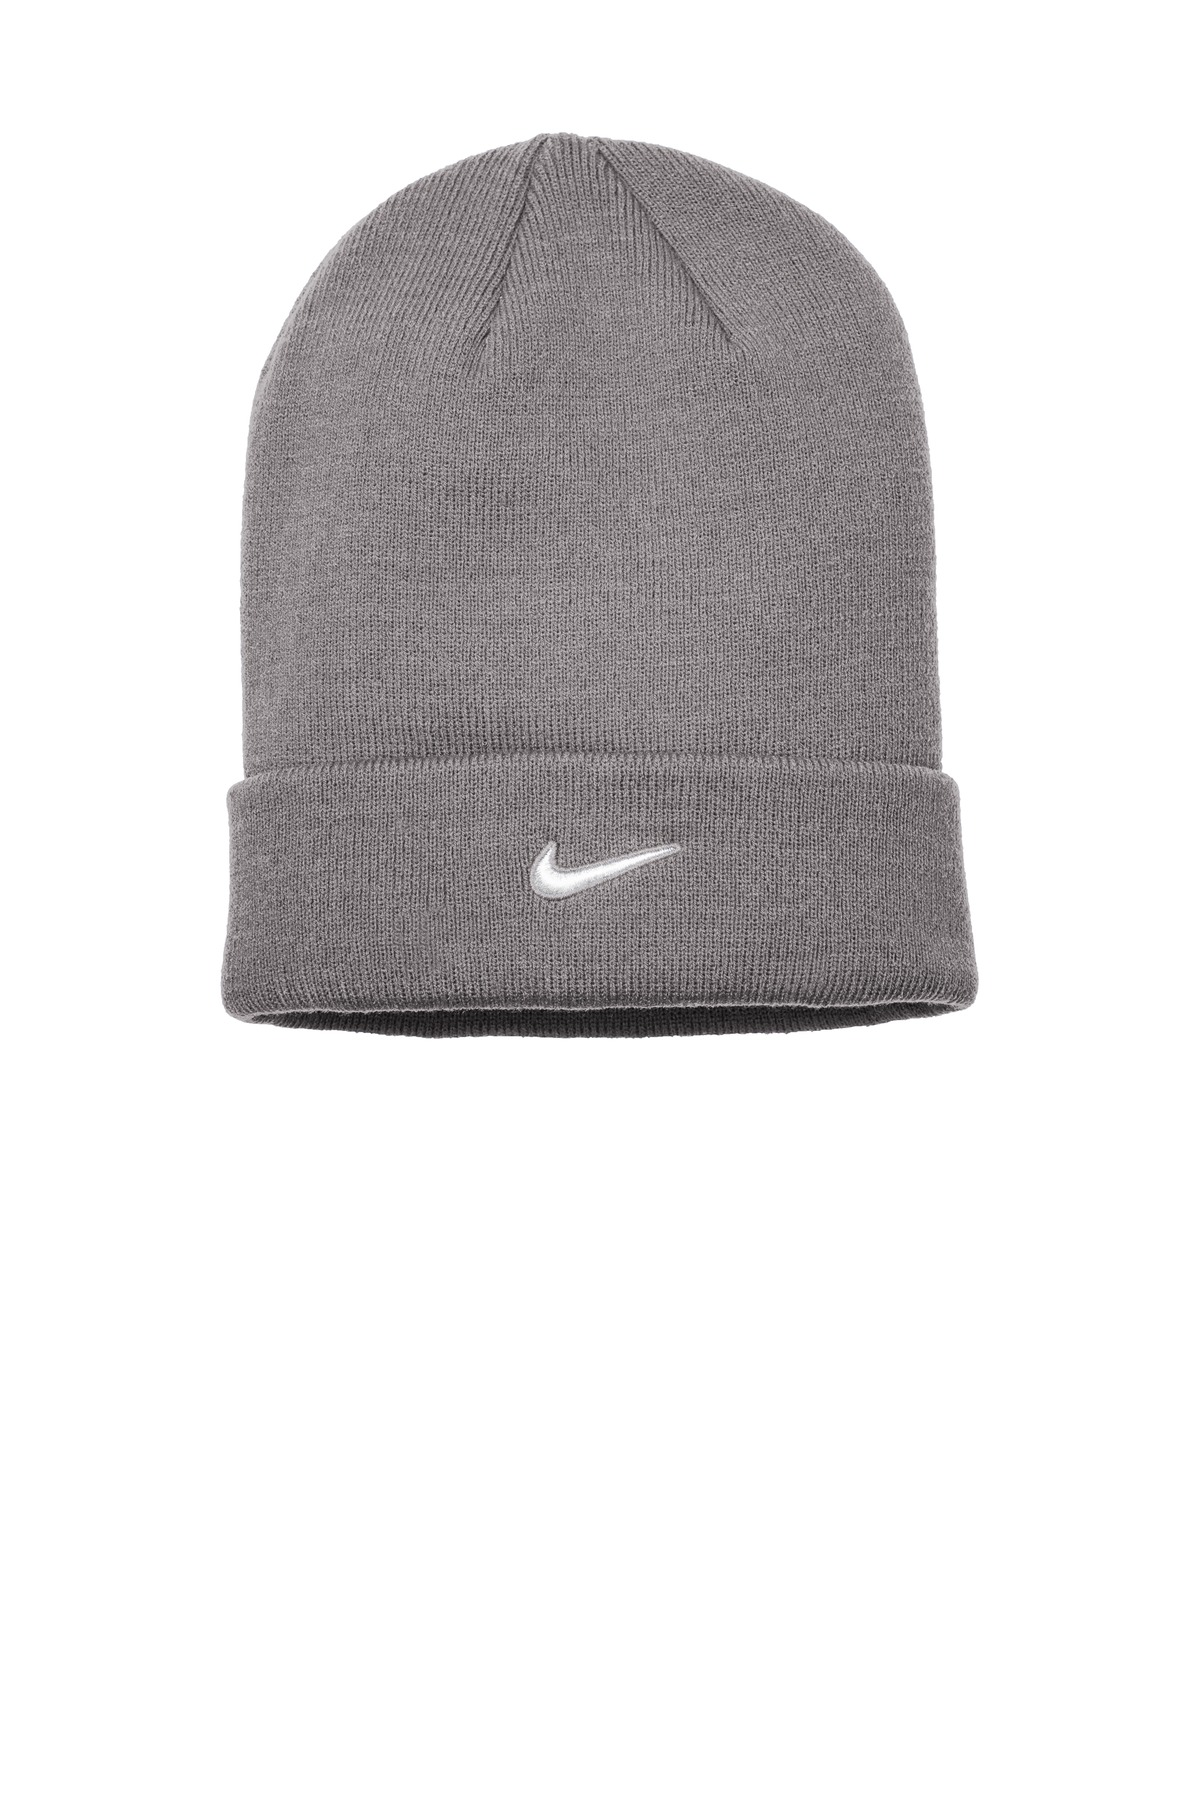 Nike Sideline Beanie 867309 - Medium Grey